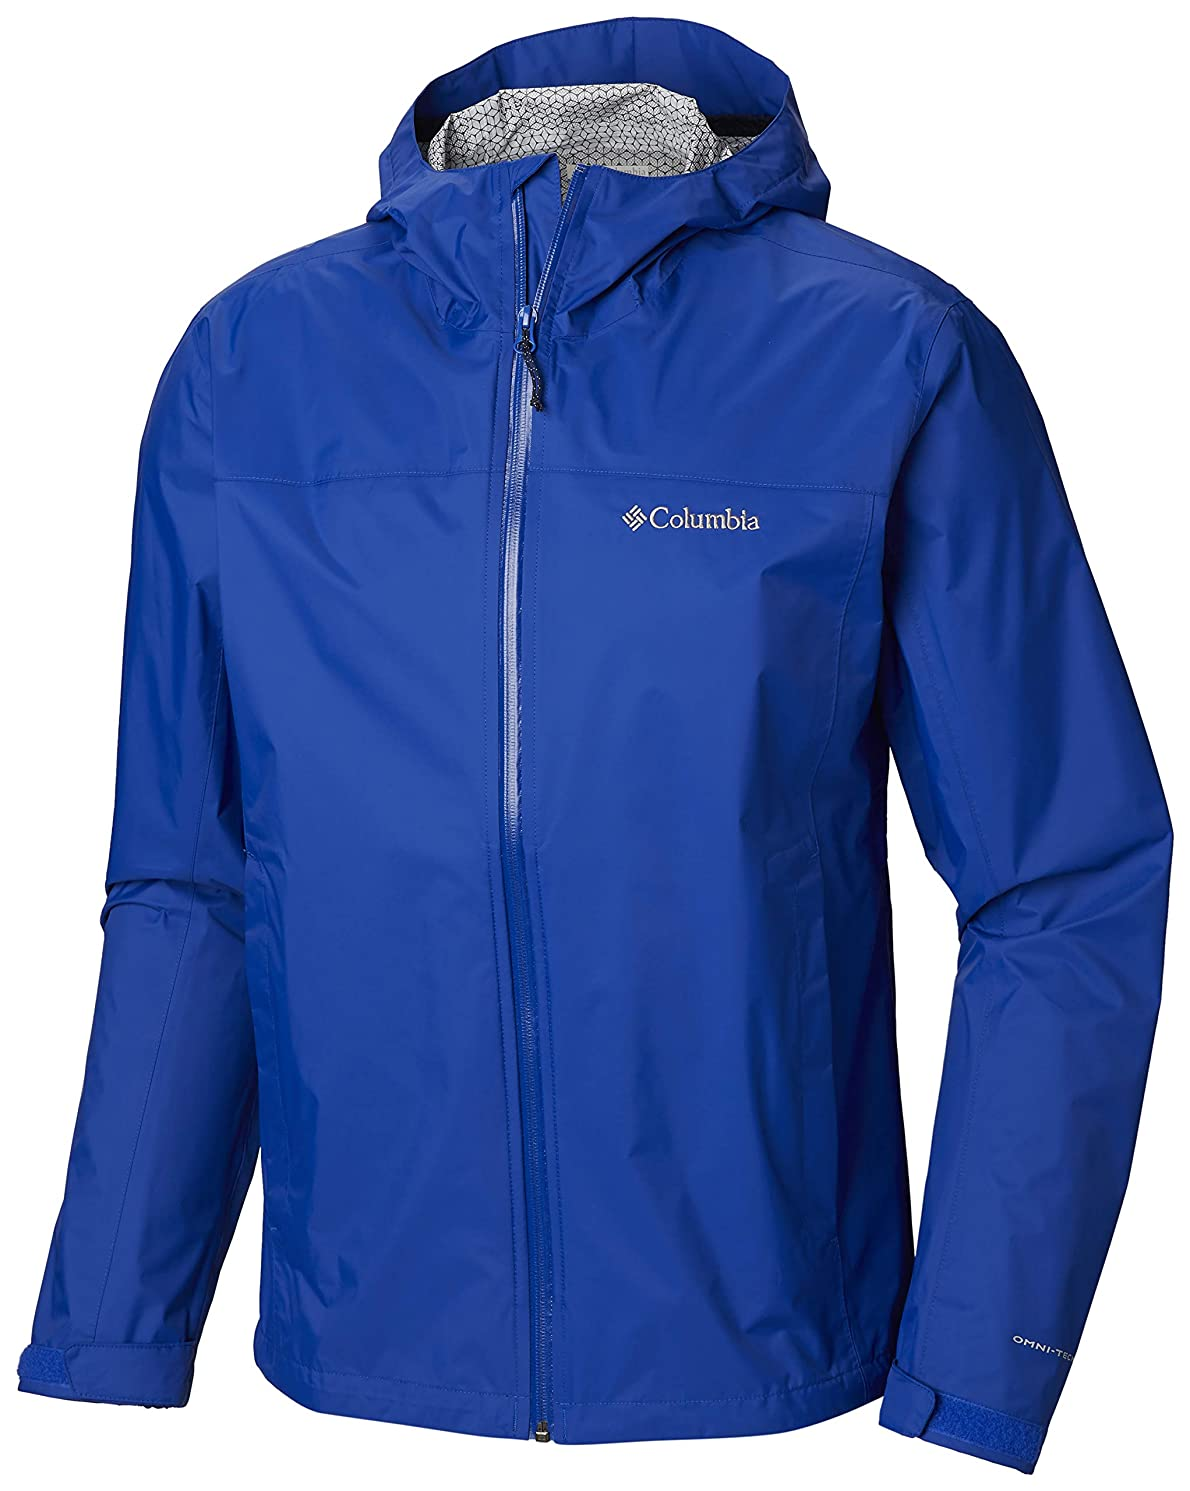 Columbia Men's EvaPOURation Rain Jacket, Waterproof and Breathable